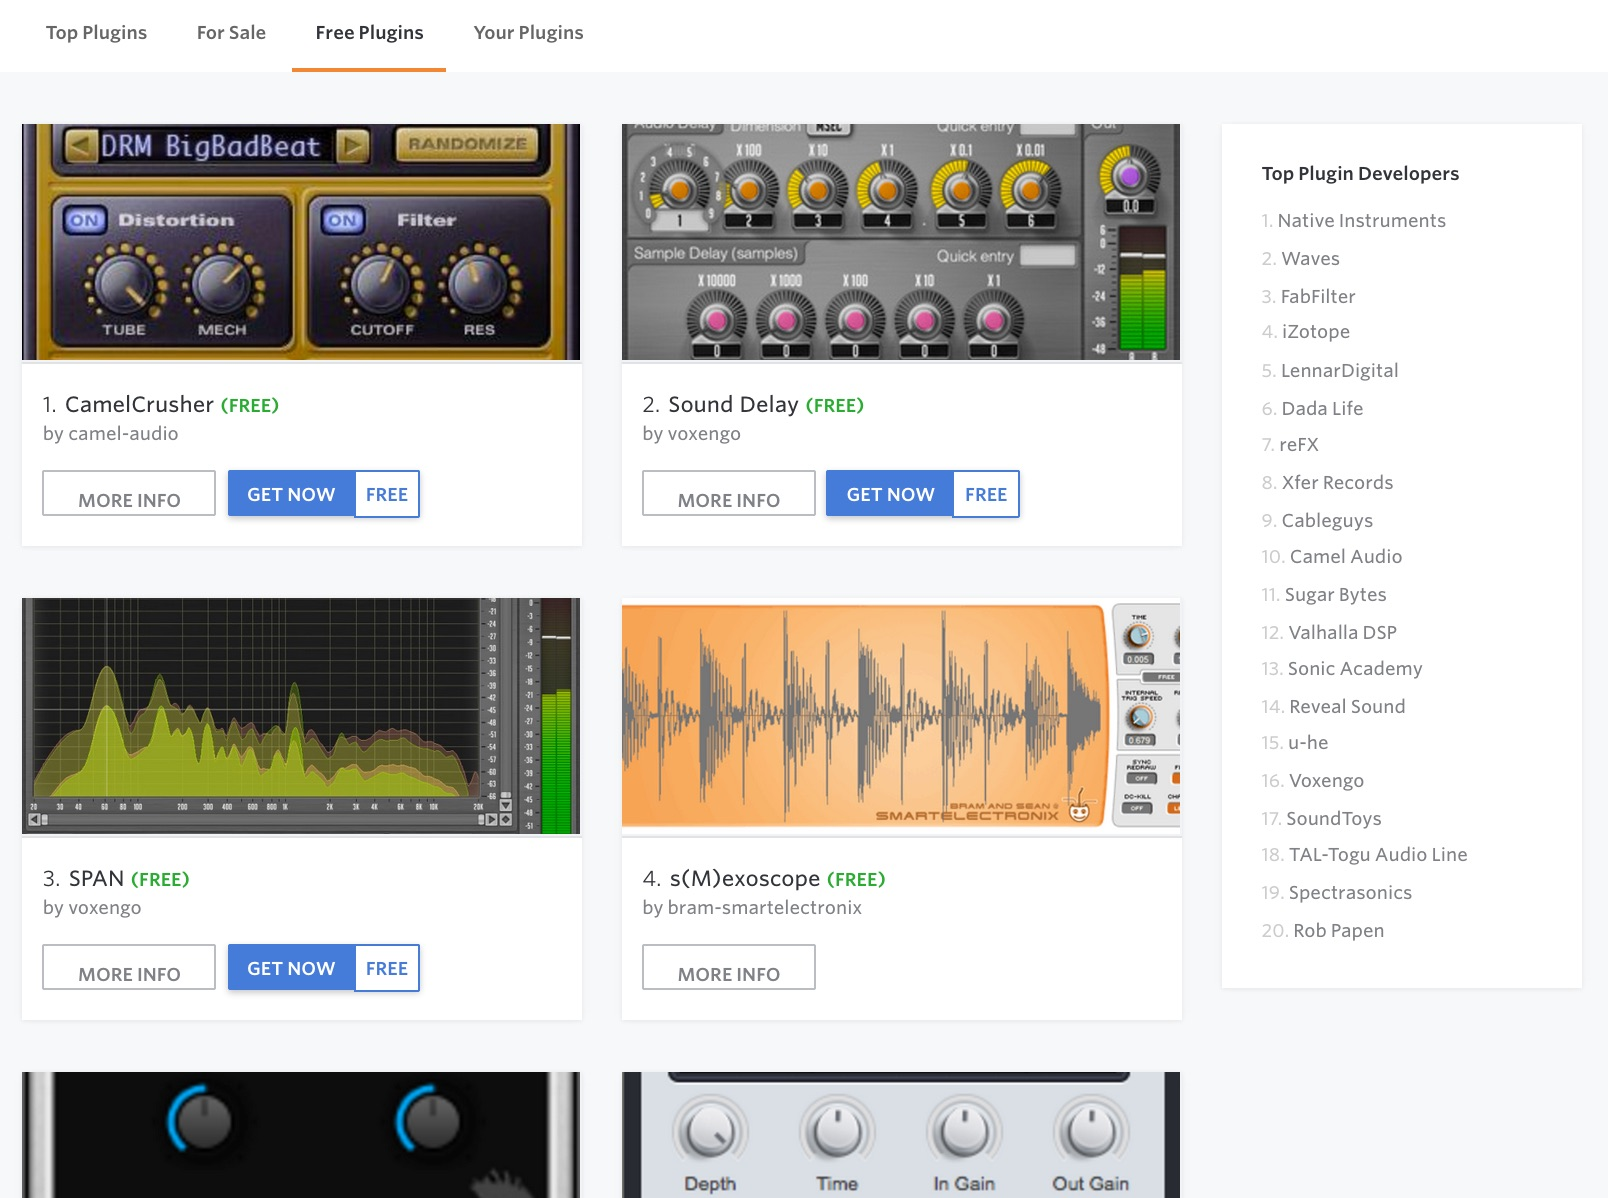 Splice Just Launched a Huge Database of Free Music Plug-ins, And It's Completely Awesome